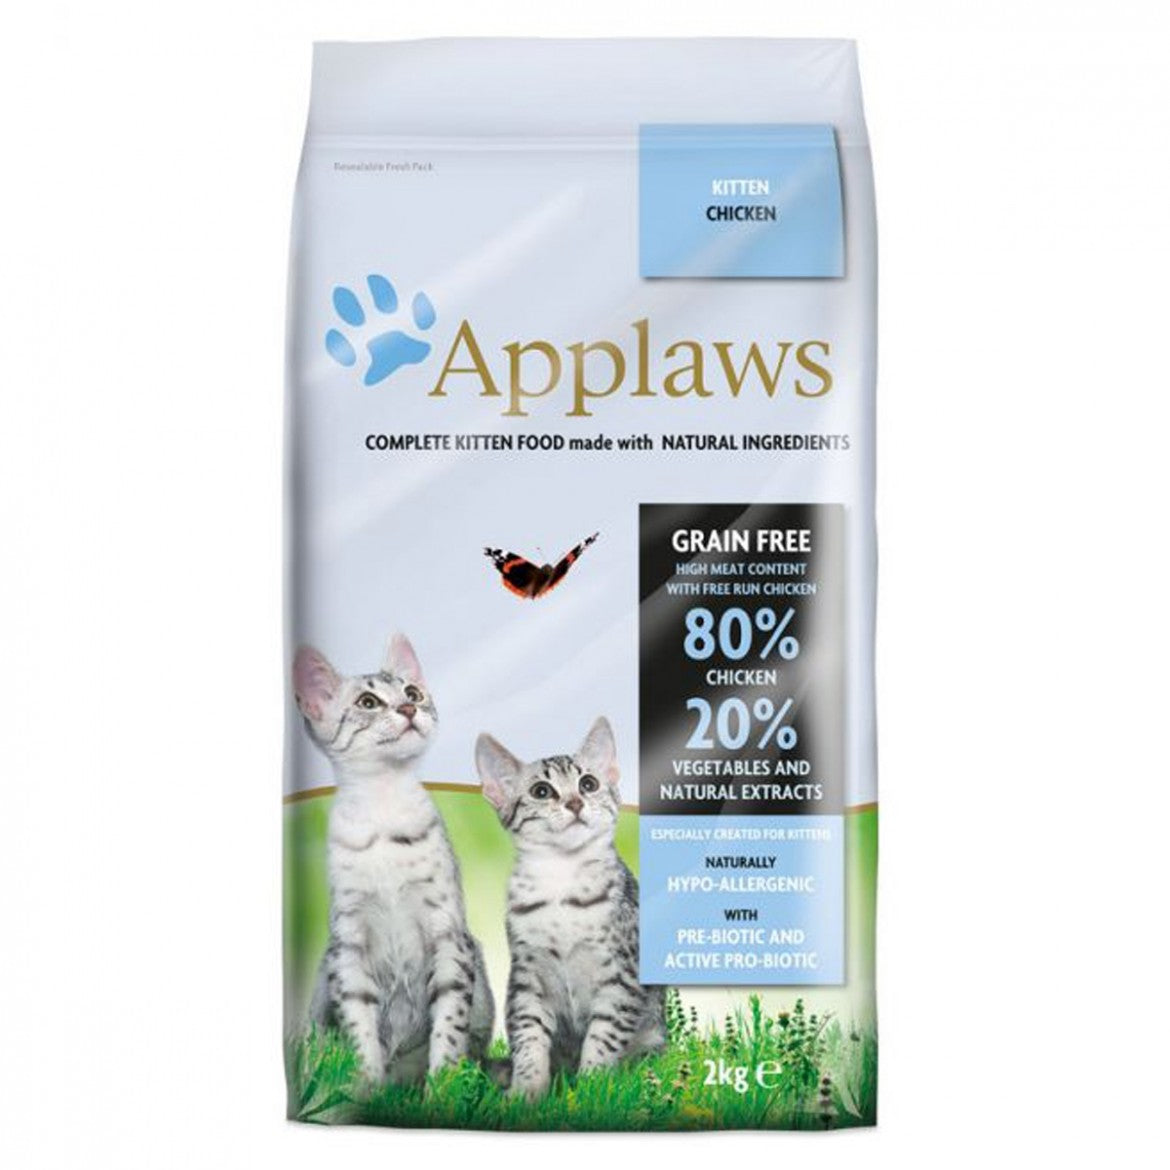 Applaws Cat Food - Kitten Chicken 2kg